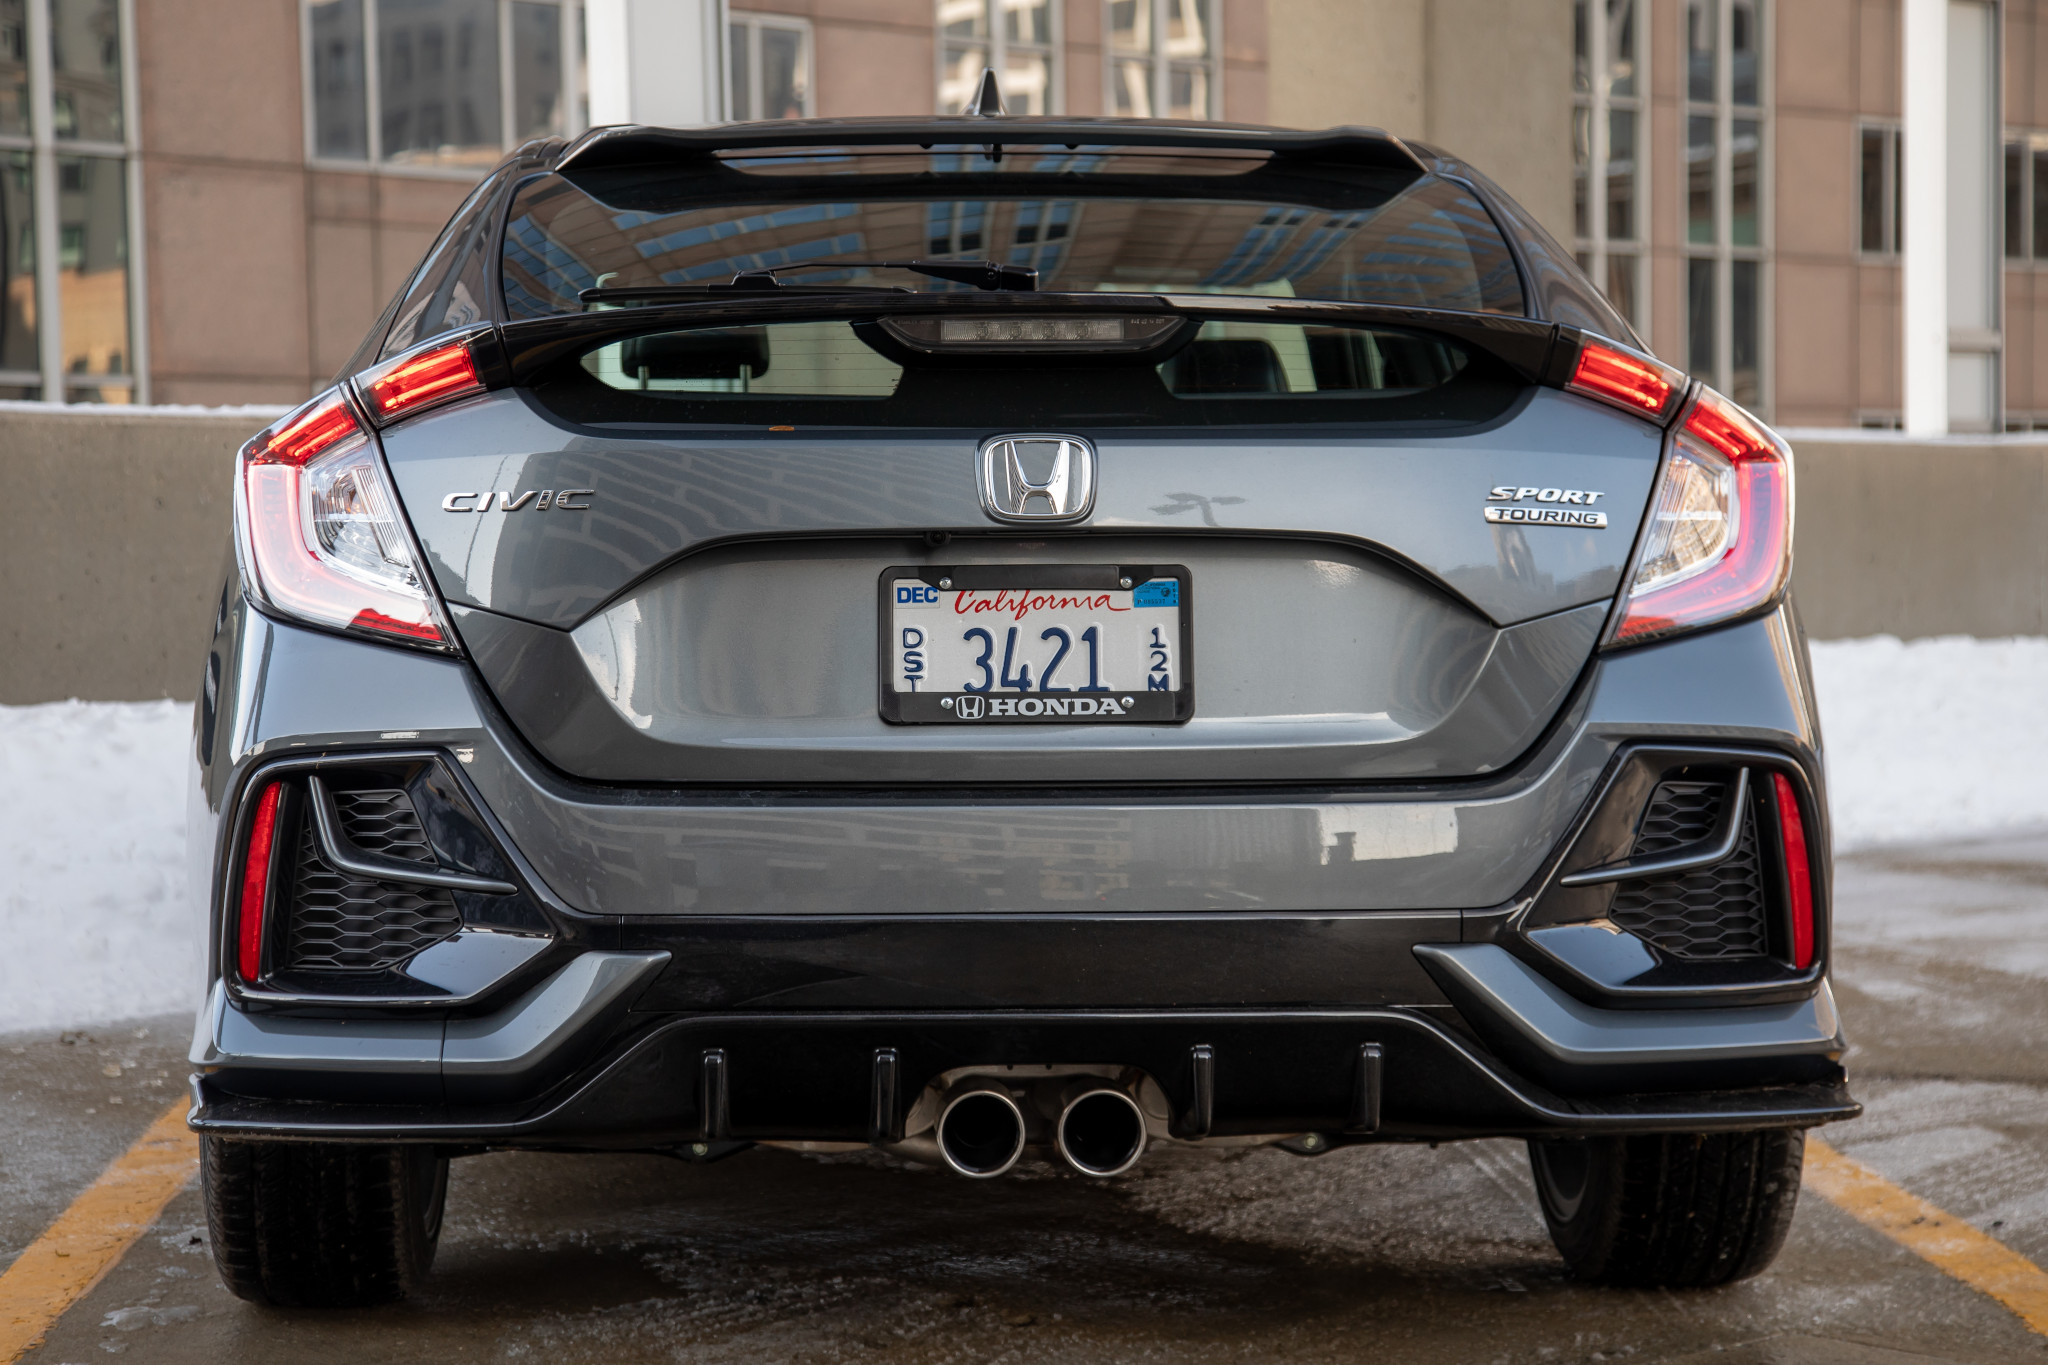 Top 5 Reviews and Videos of the Week: Honda Civic Steps Up, Fun Comes First